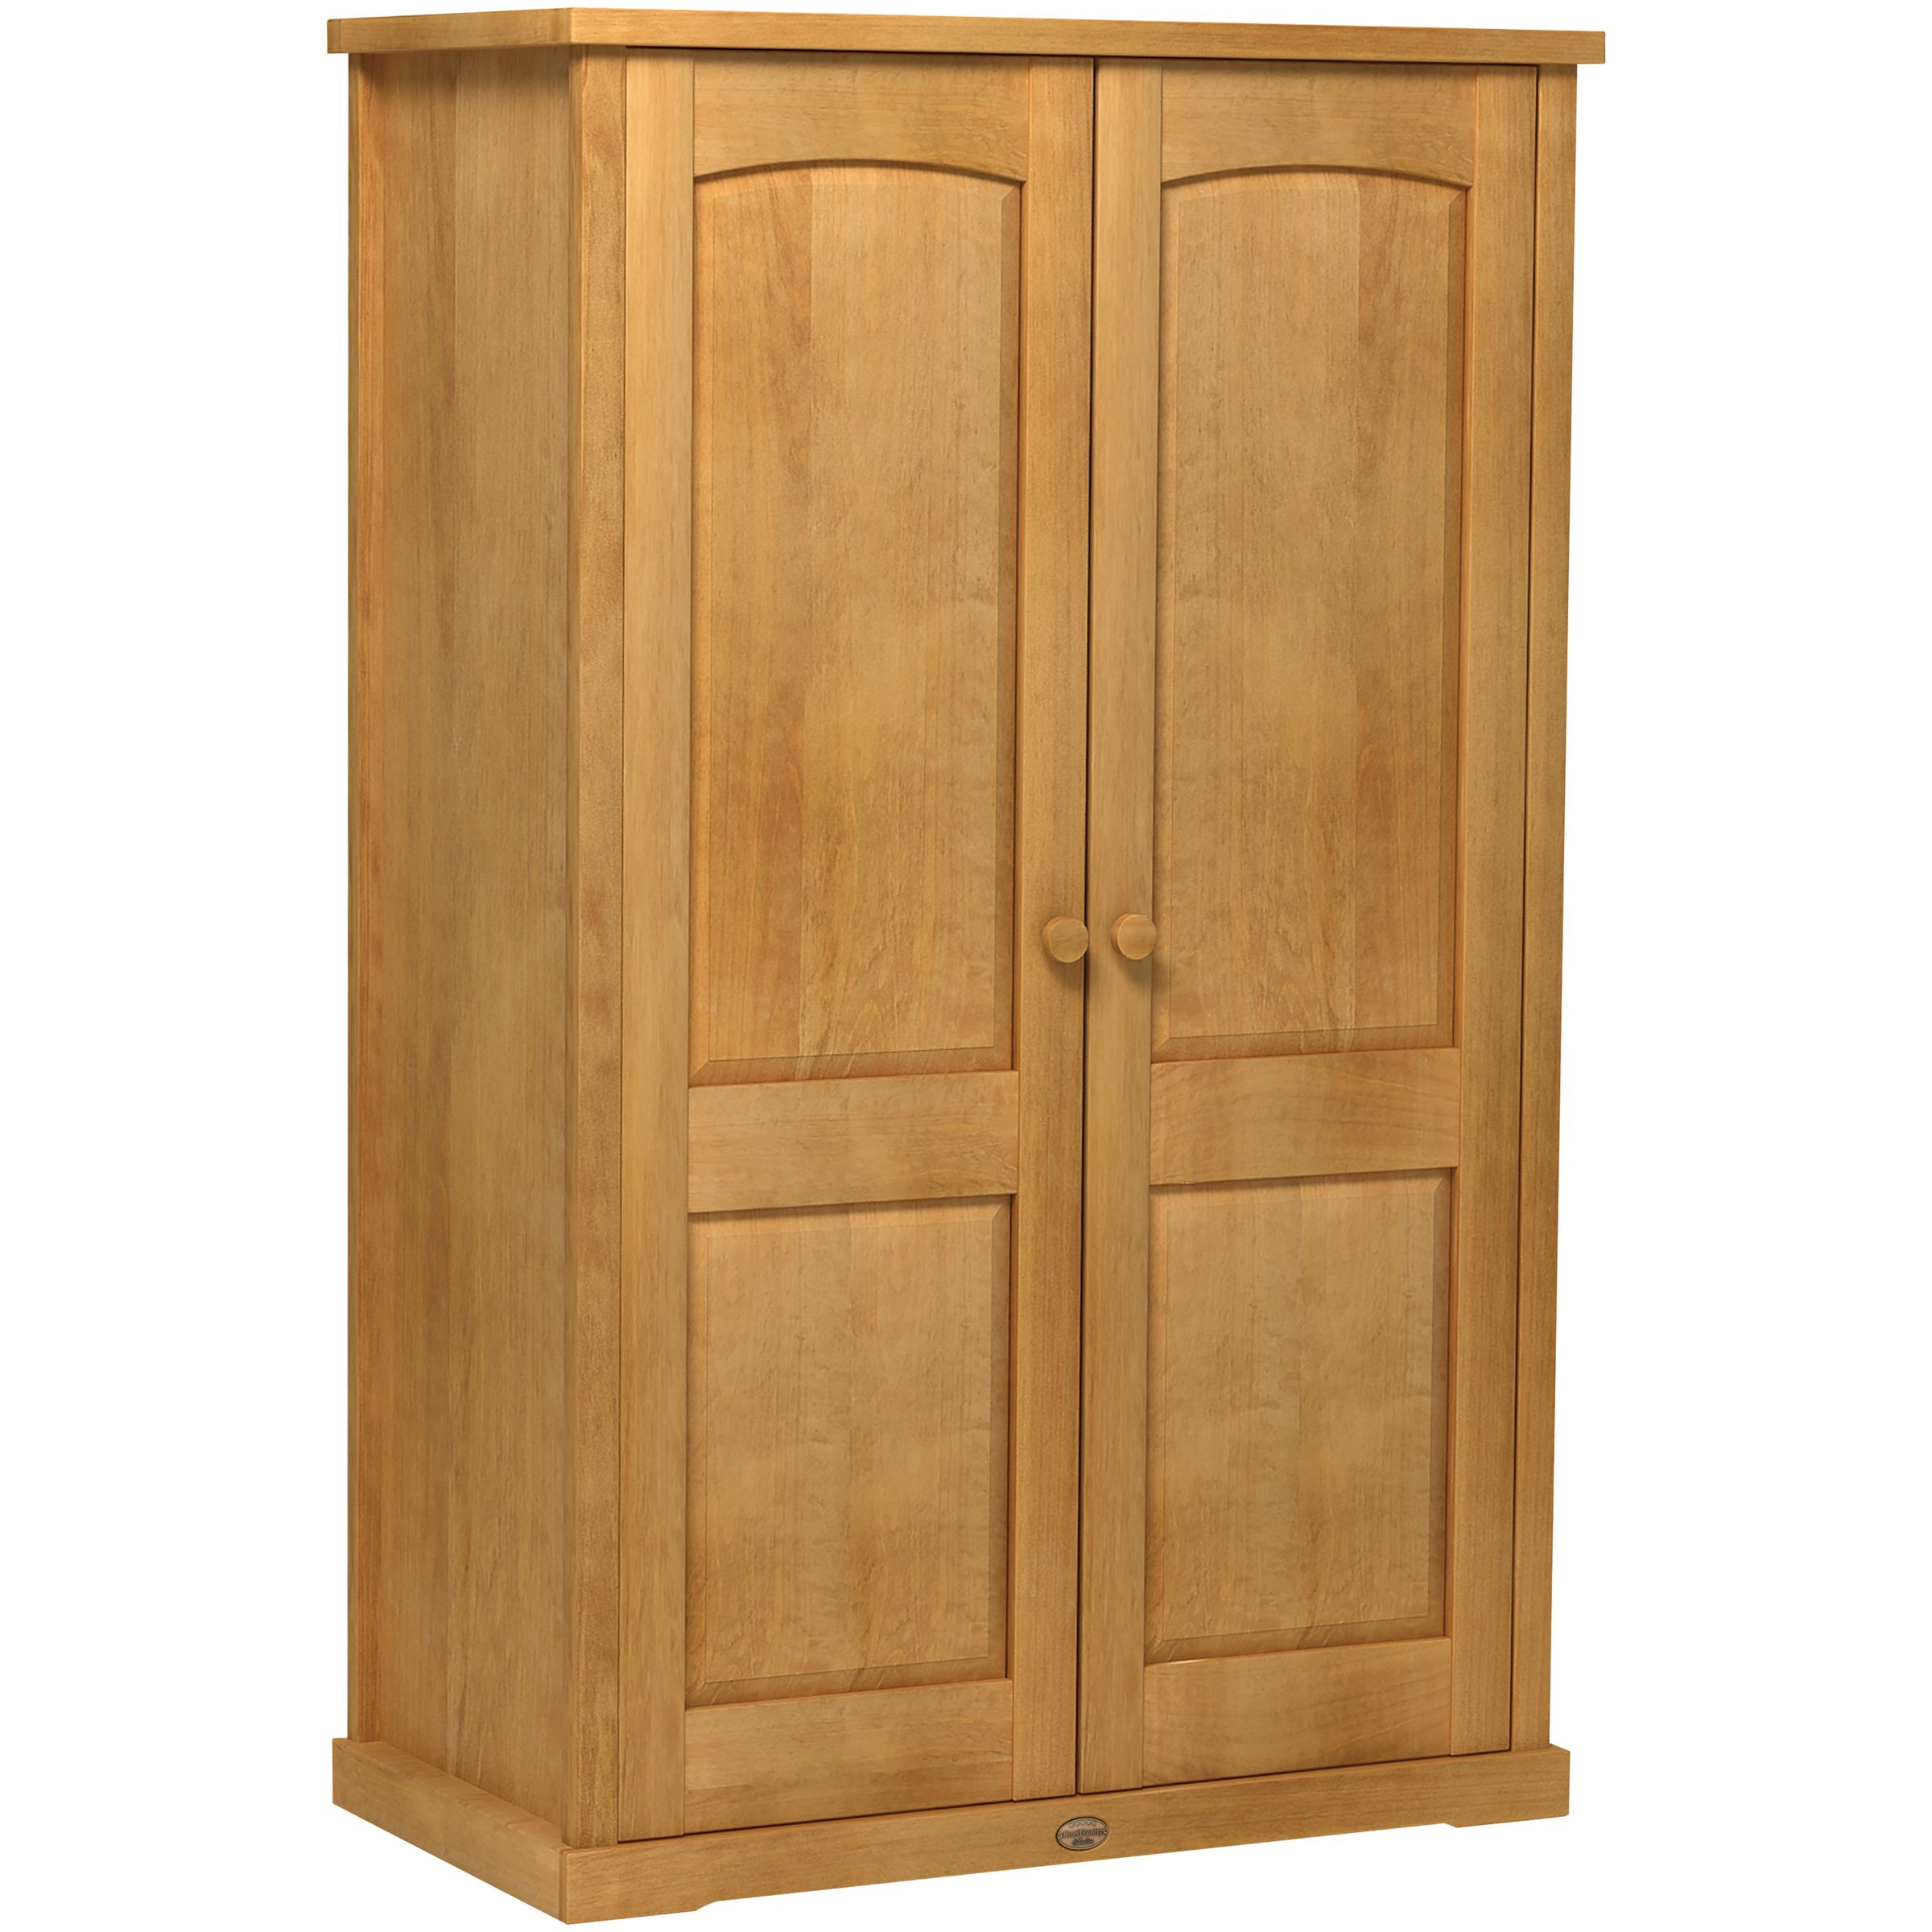 Country Wardrobe, Heritage Teak